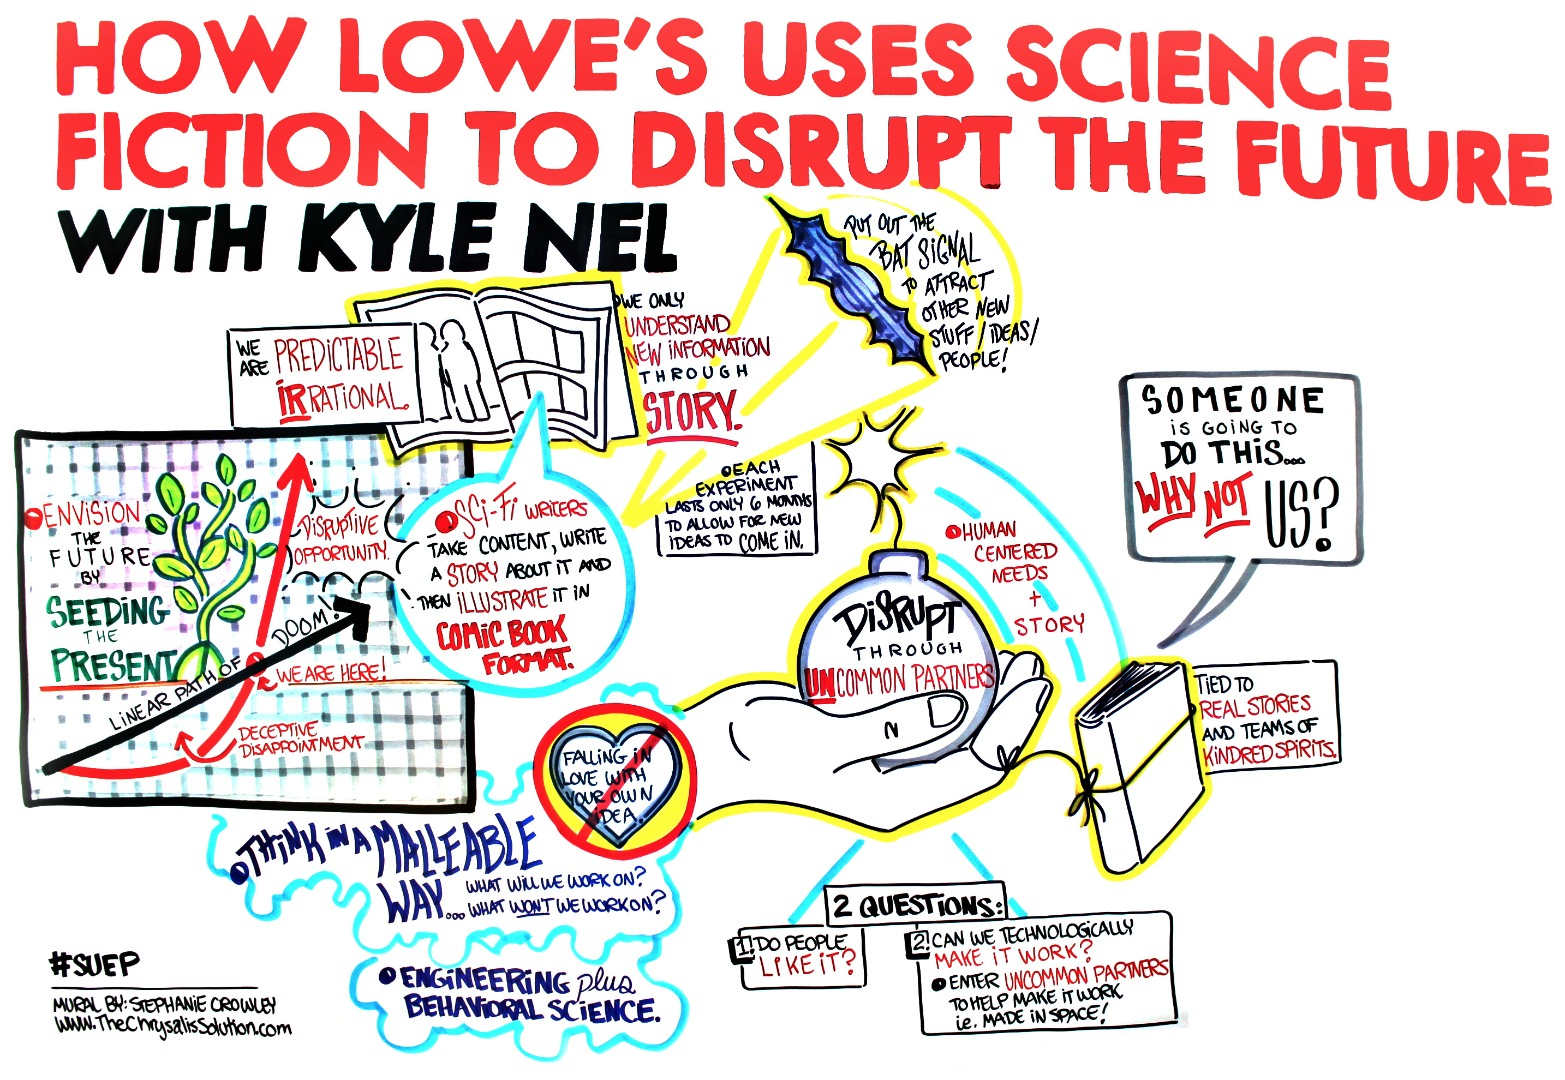 How Lowe's uses science fiction to disrupt the future